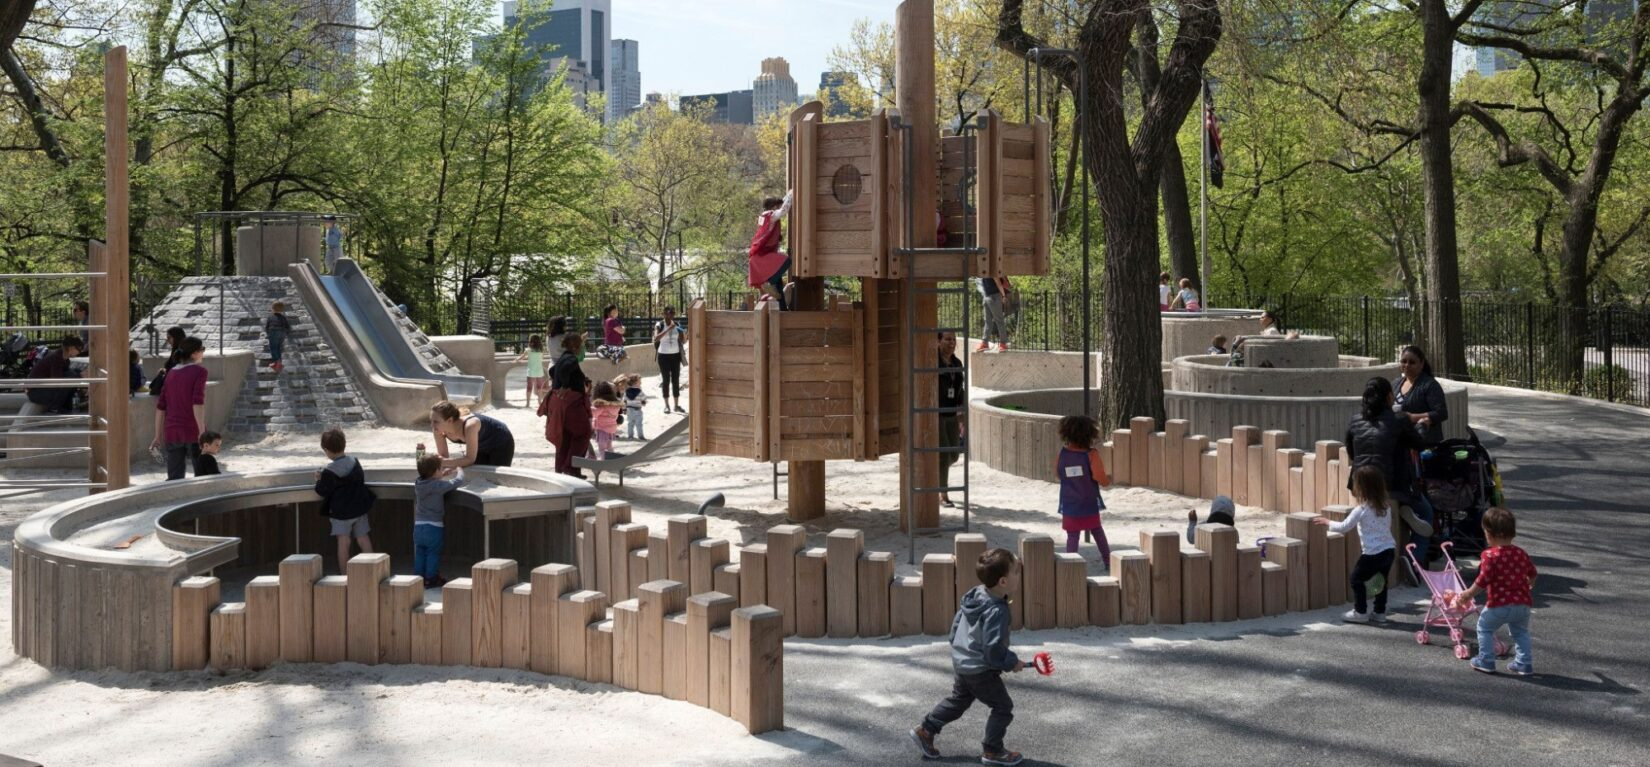 Children play late on an early spring day in a sand area ringed by vertical wooden beams of random heights.